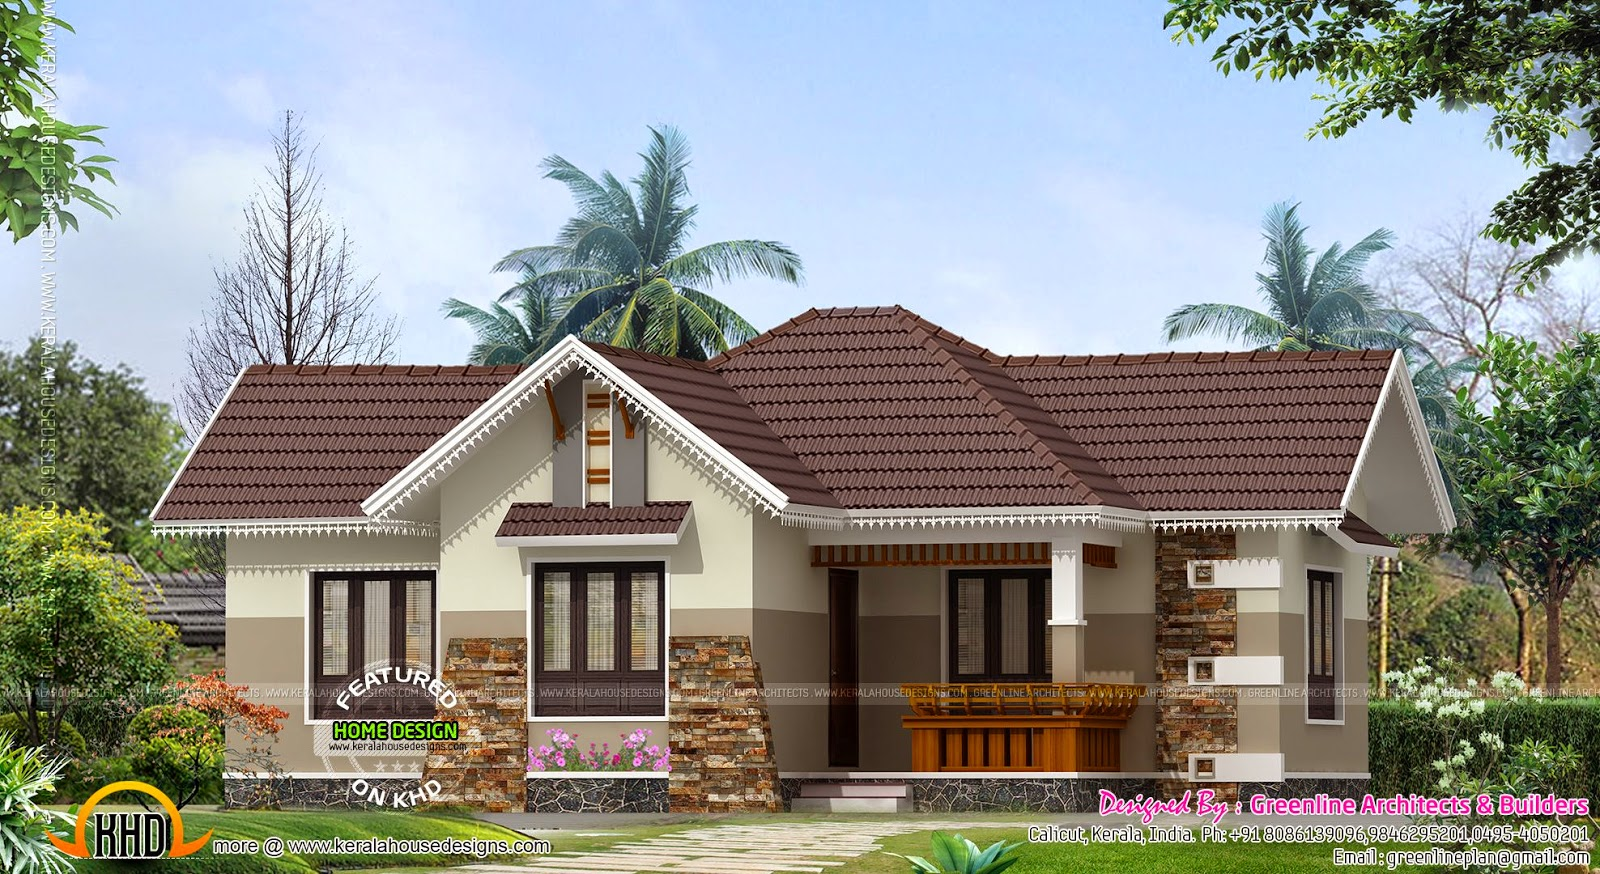 Nice small house exterior kerala home design and floor plans for Exterior house plans